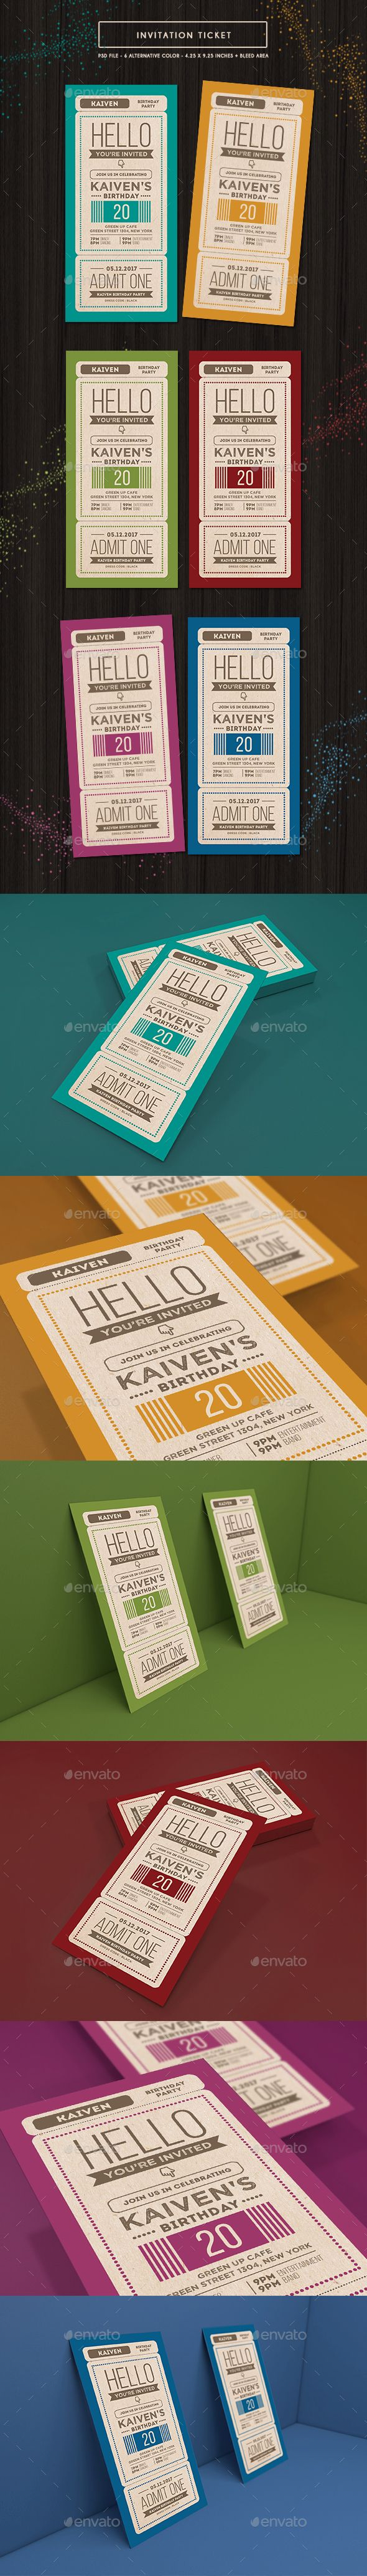 Invitation Ticket Template PSD                                                                                                                                                                                 More